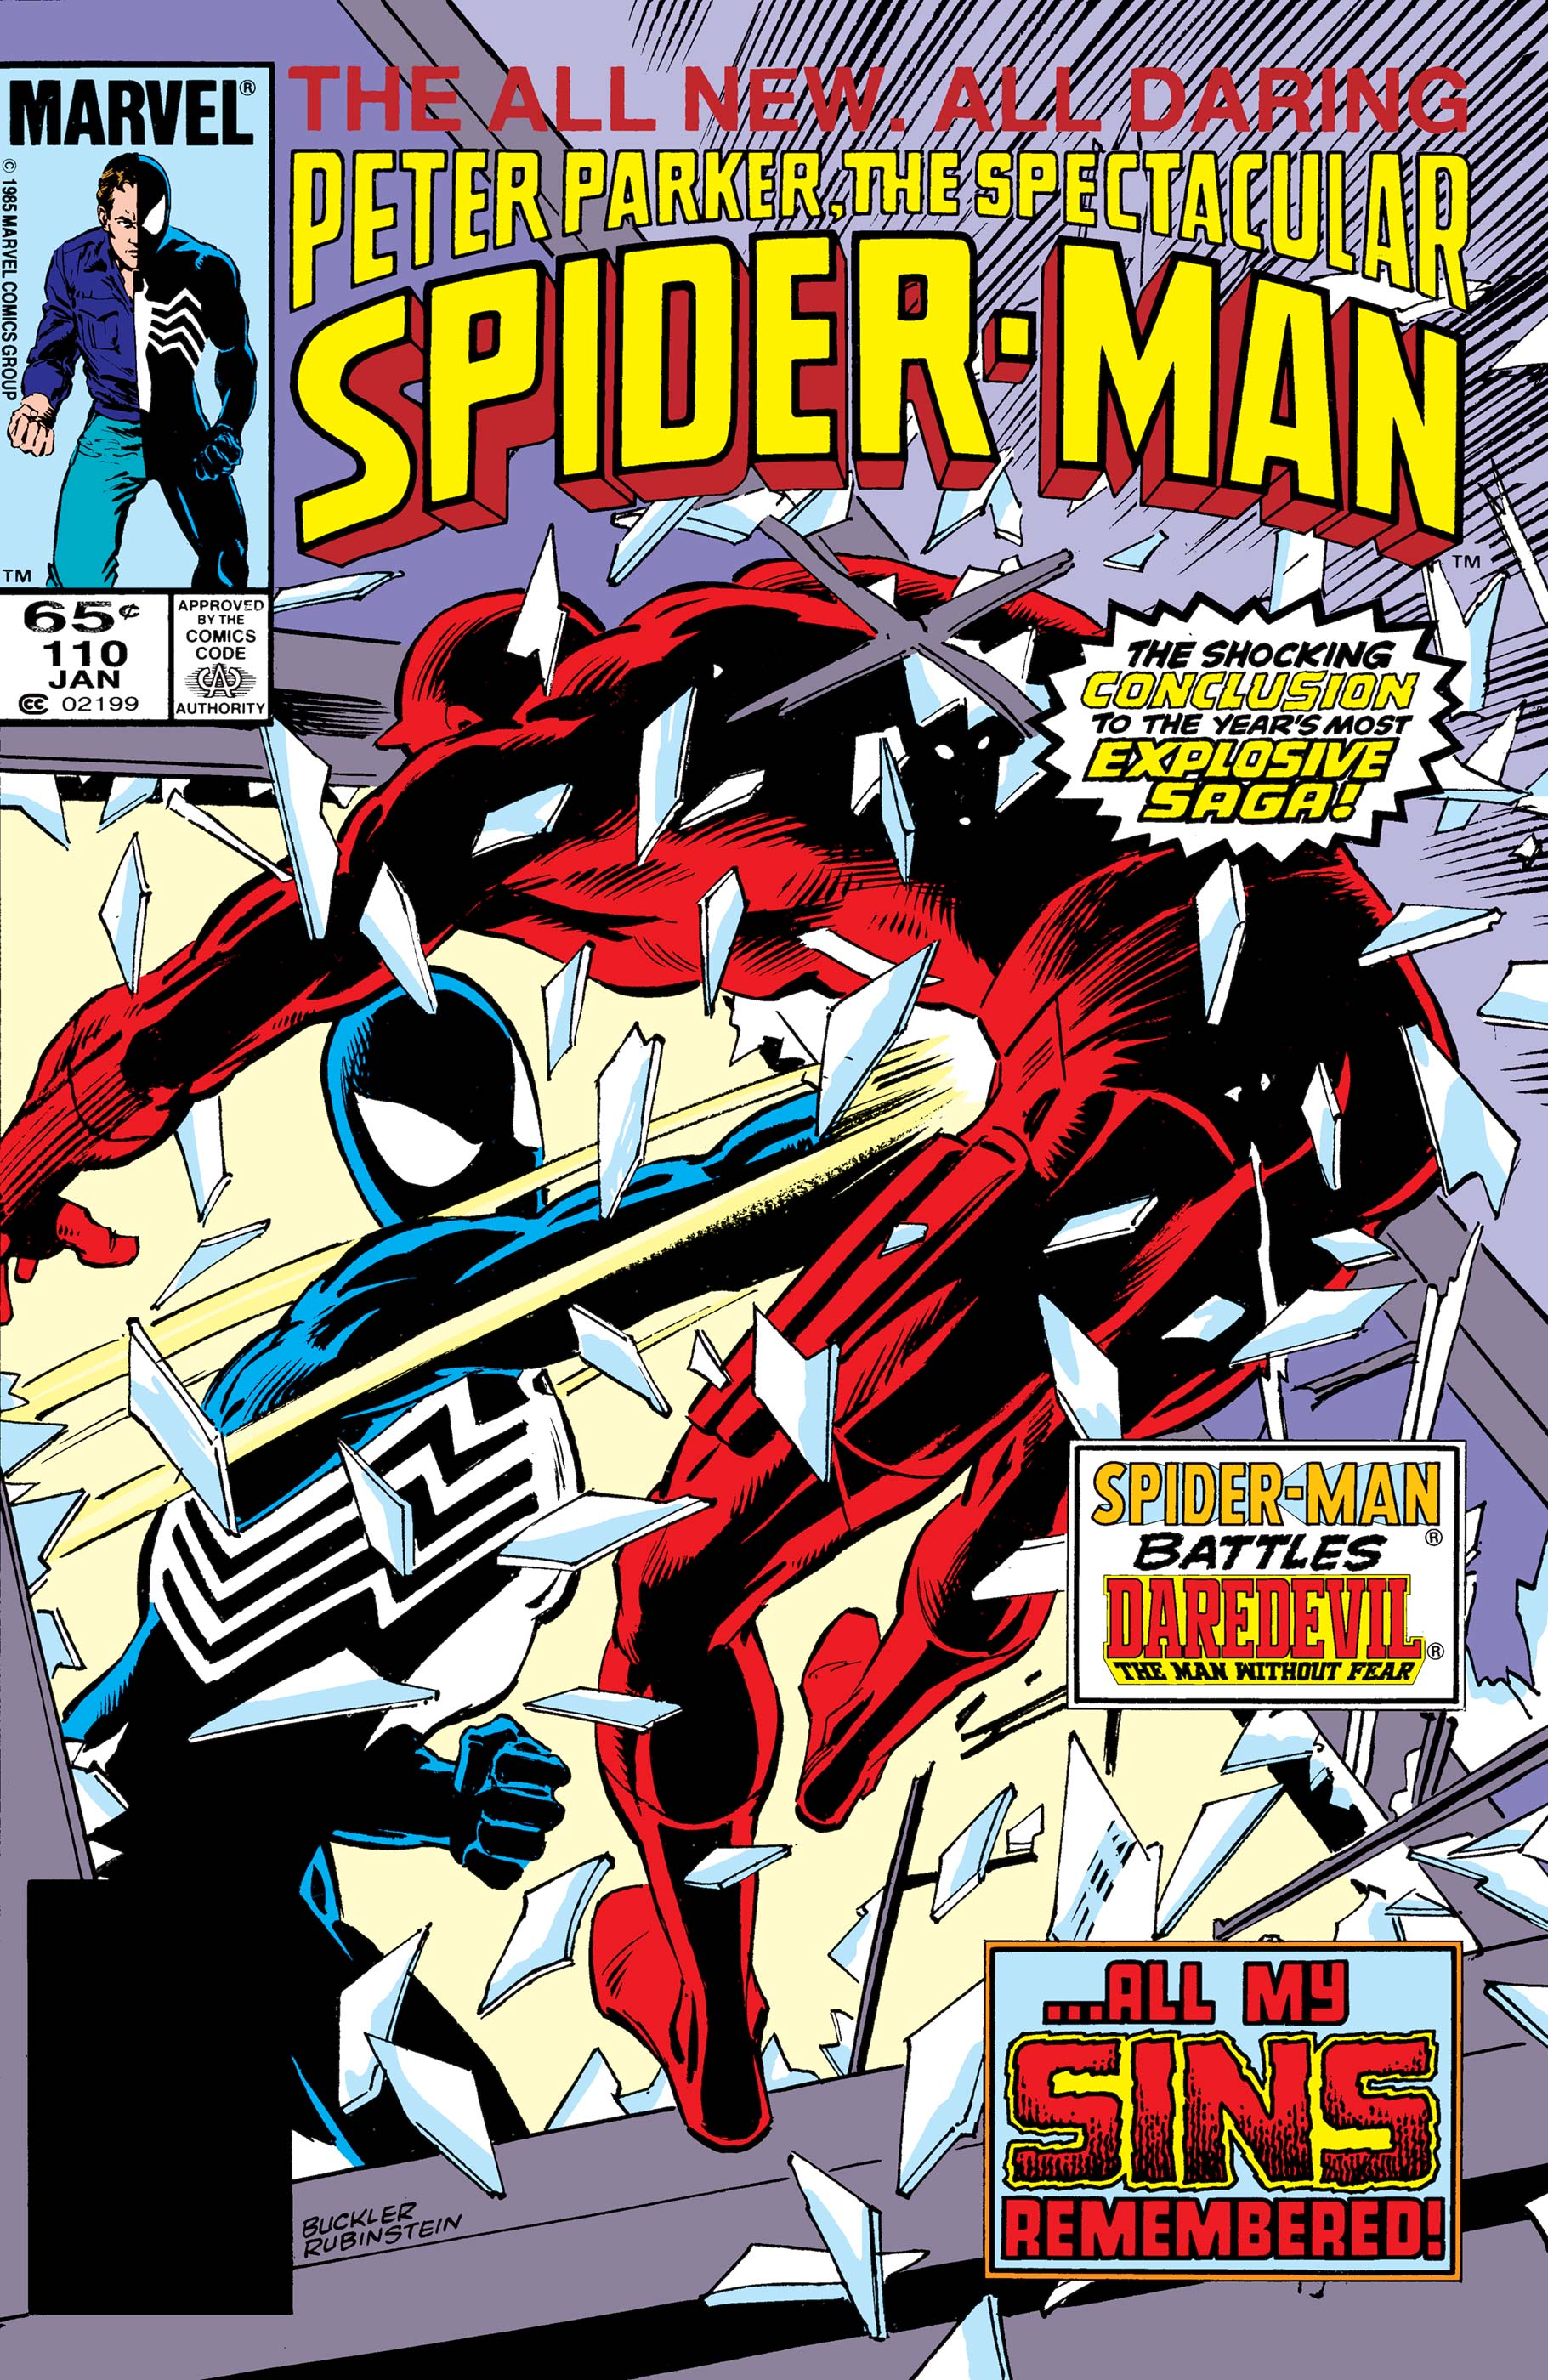 Peter Parker, the Spectacular Spider-Man (1976) #110